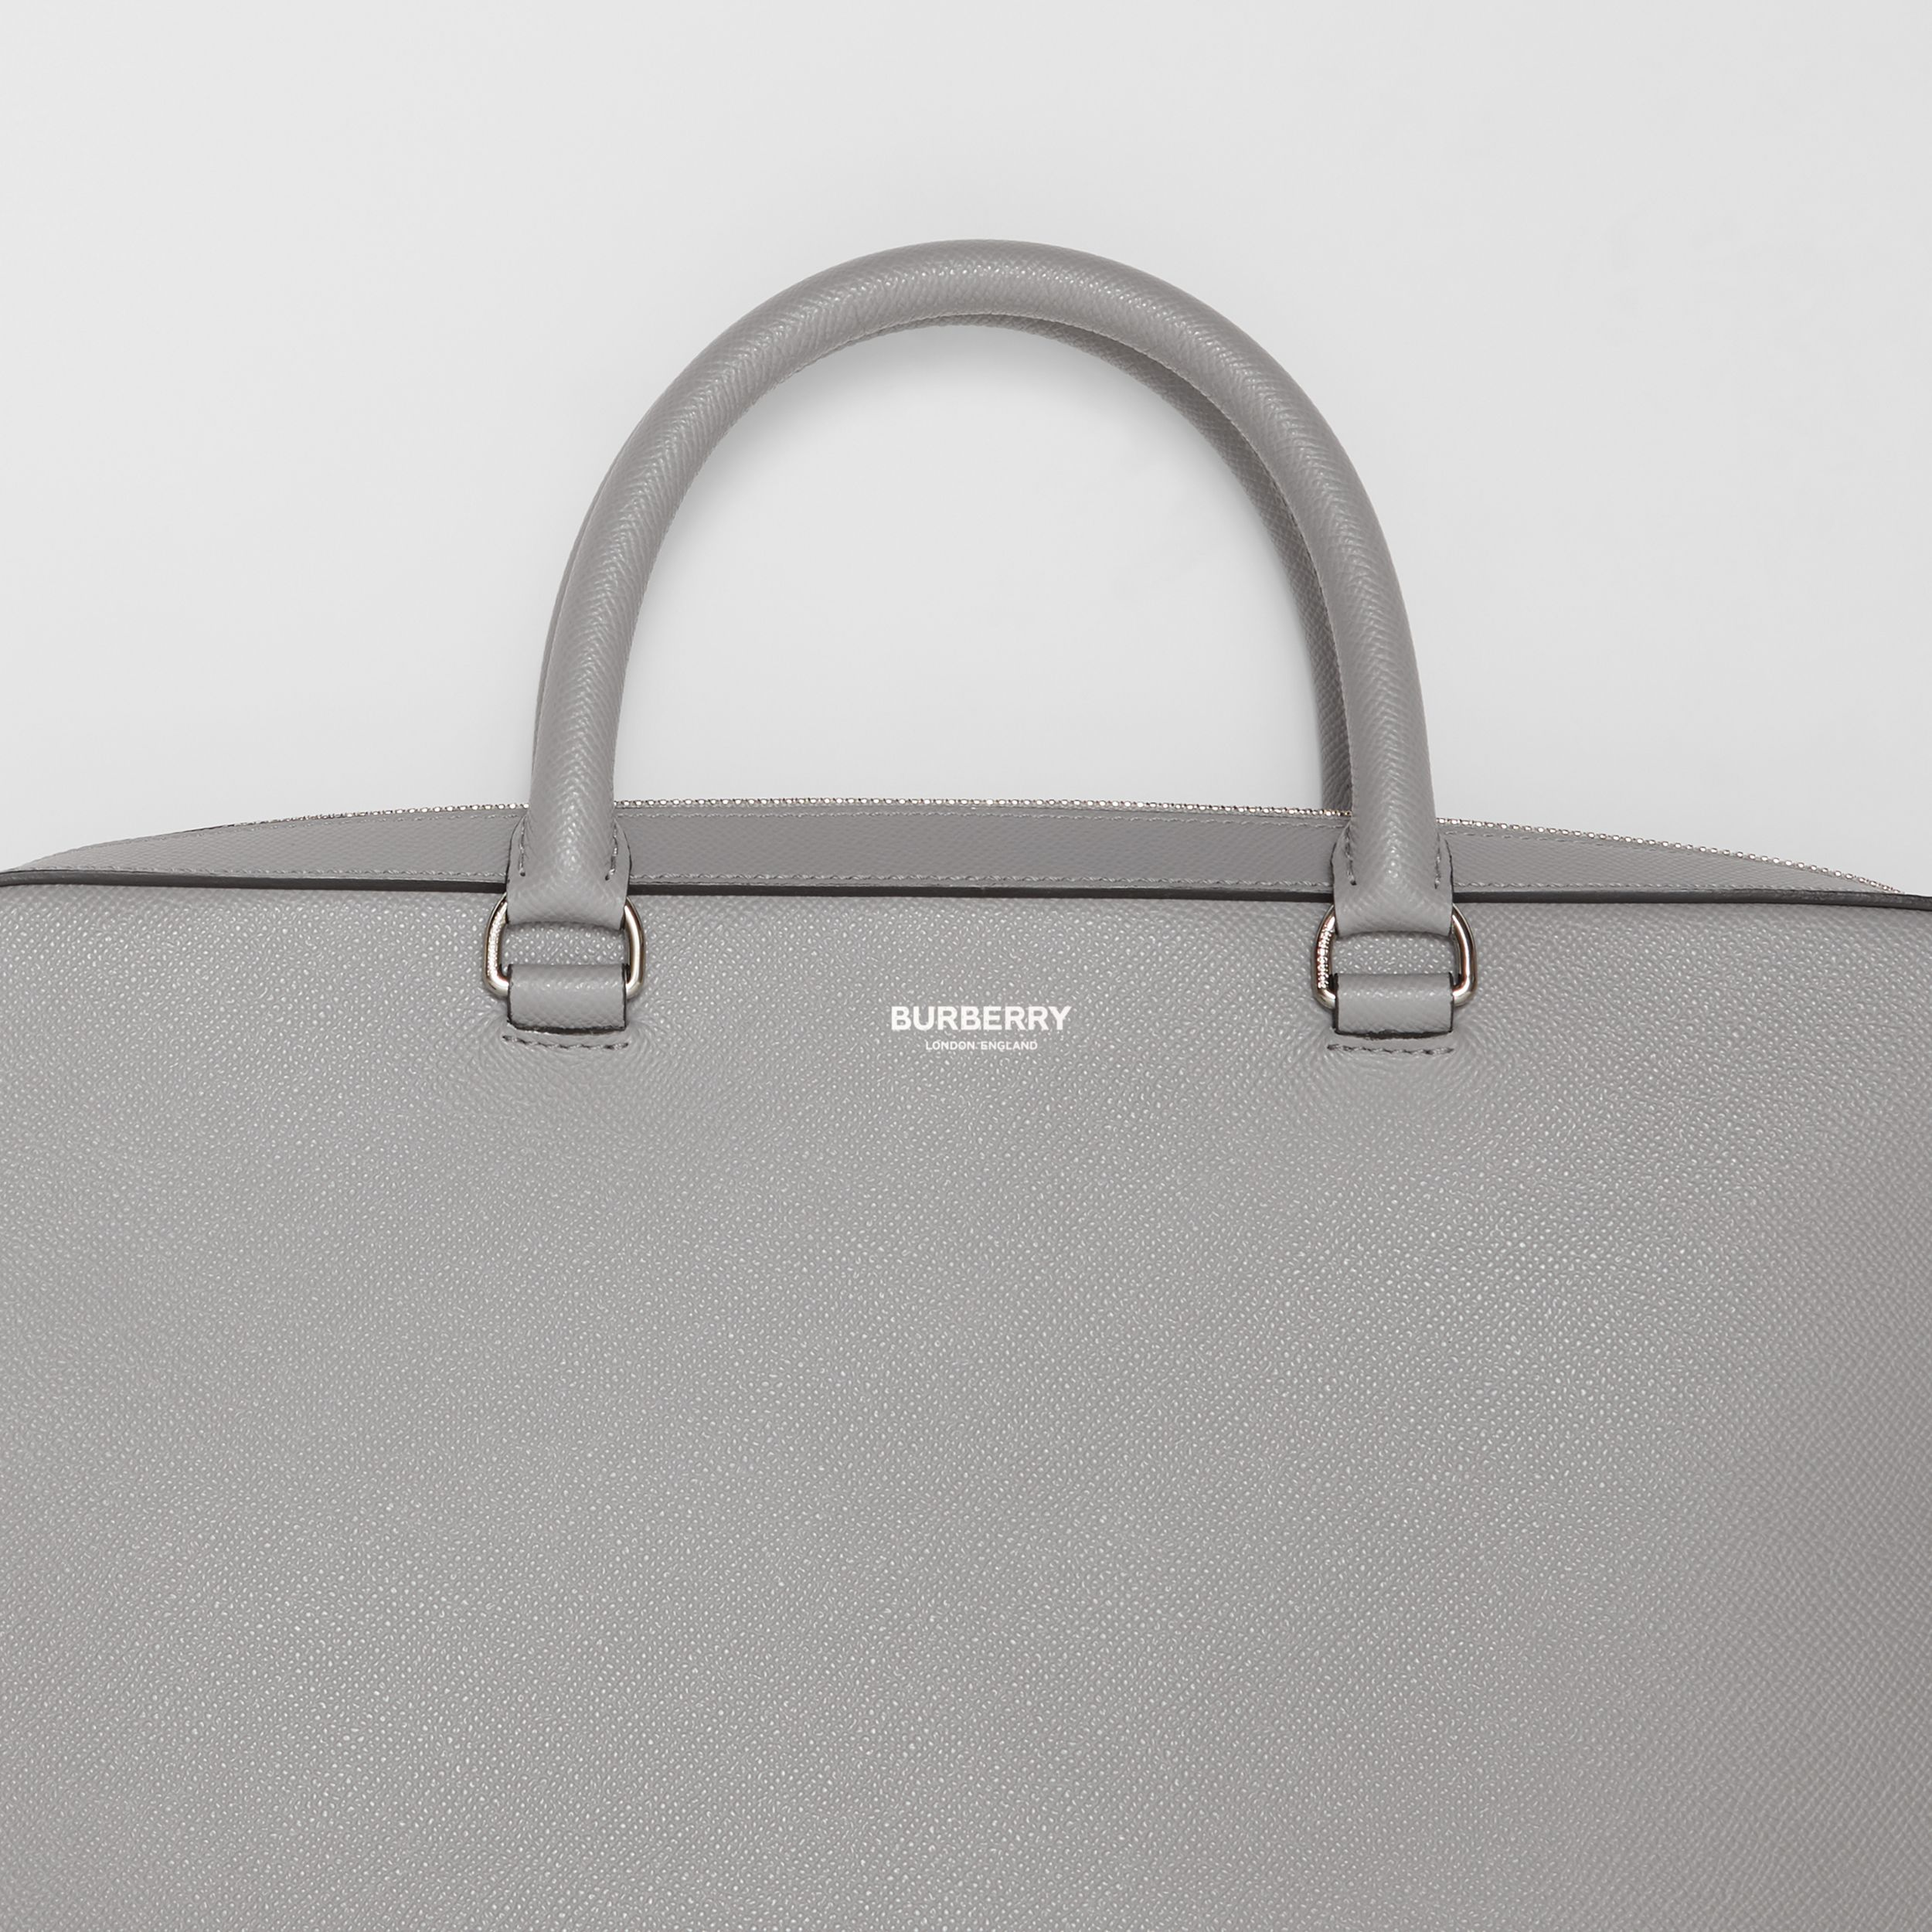 Grainy Leather Briefcase in Cloud Grey - Men | Burberry - 2